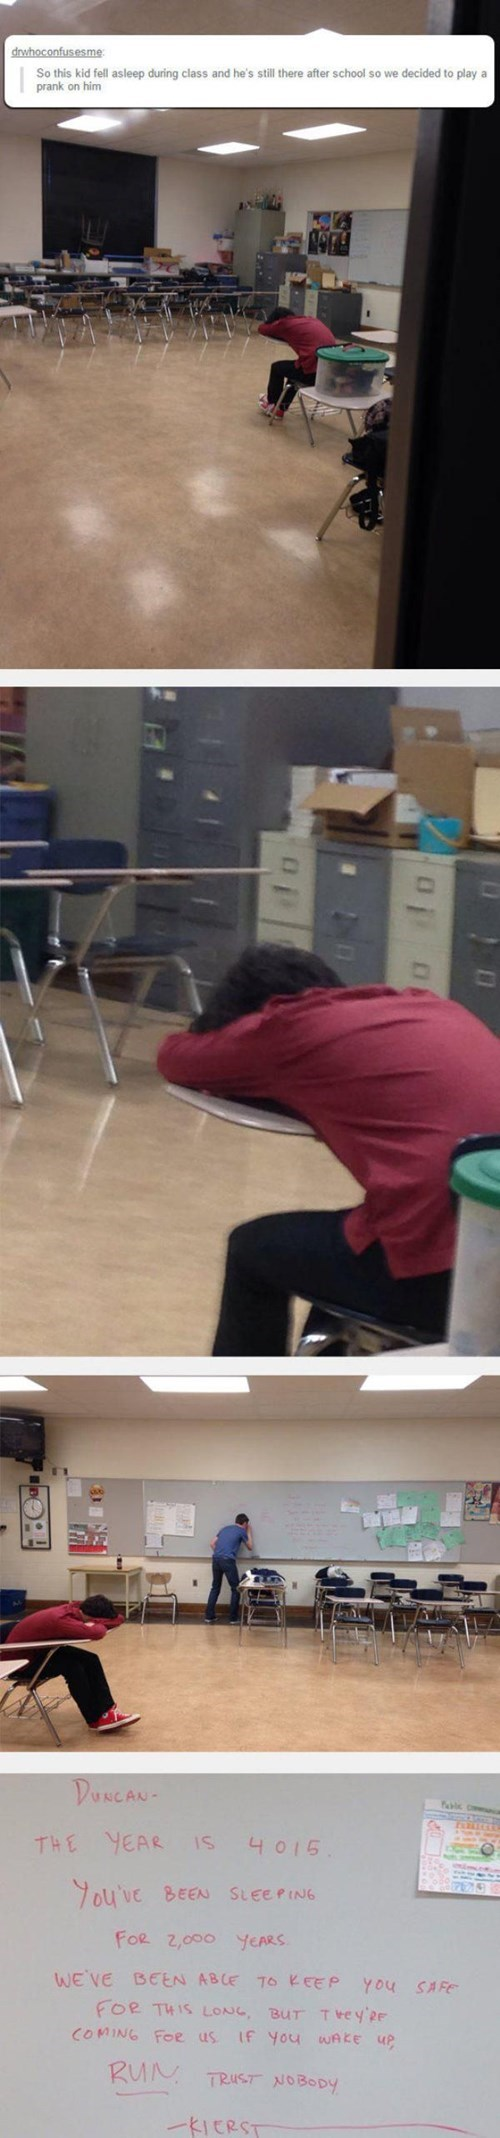 funny-prank-win-pic-class-nap